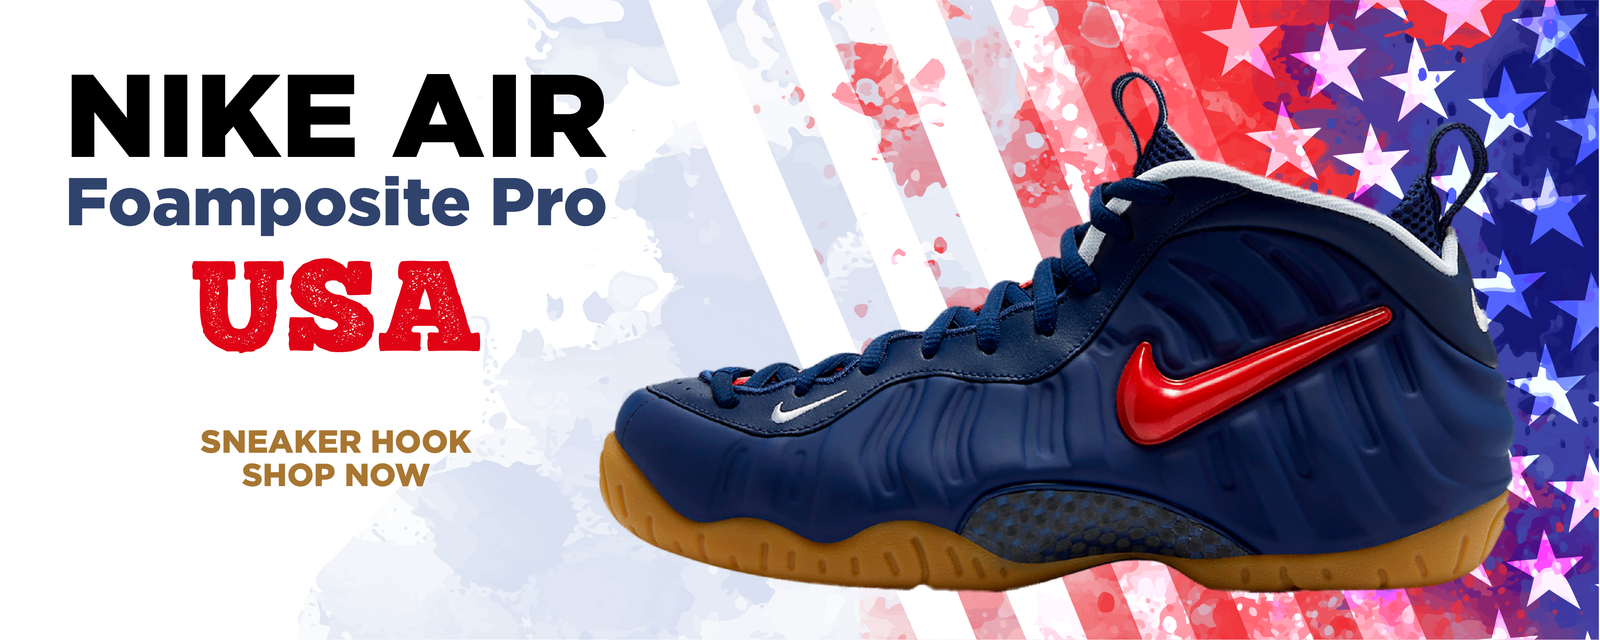 Air Foamposite Pro USA Clothing to match Sneakers | Clothing to match Nike Air Foamposite Pro USA Shoes